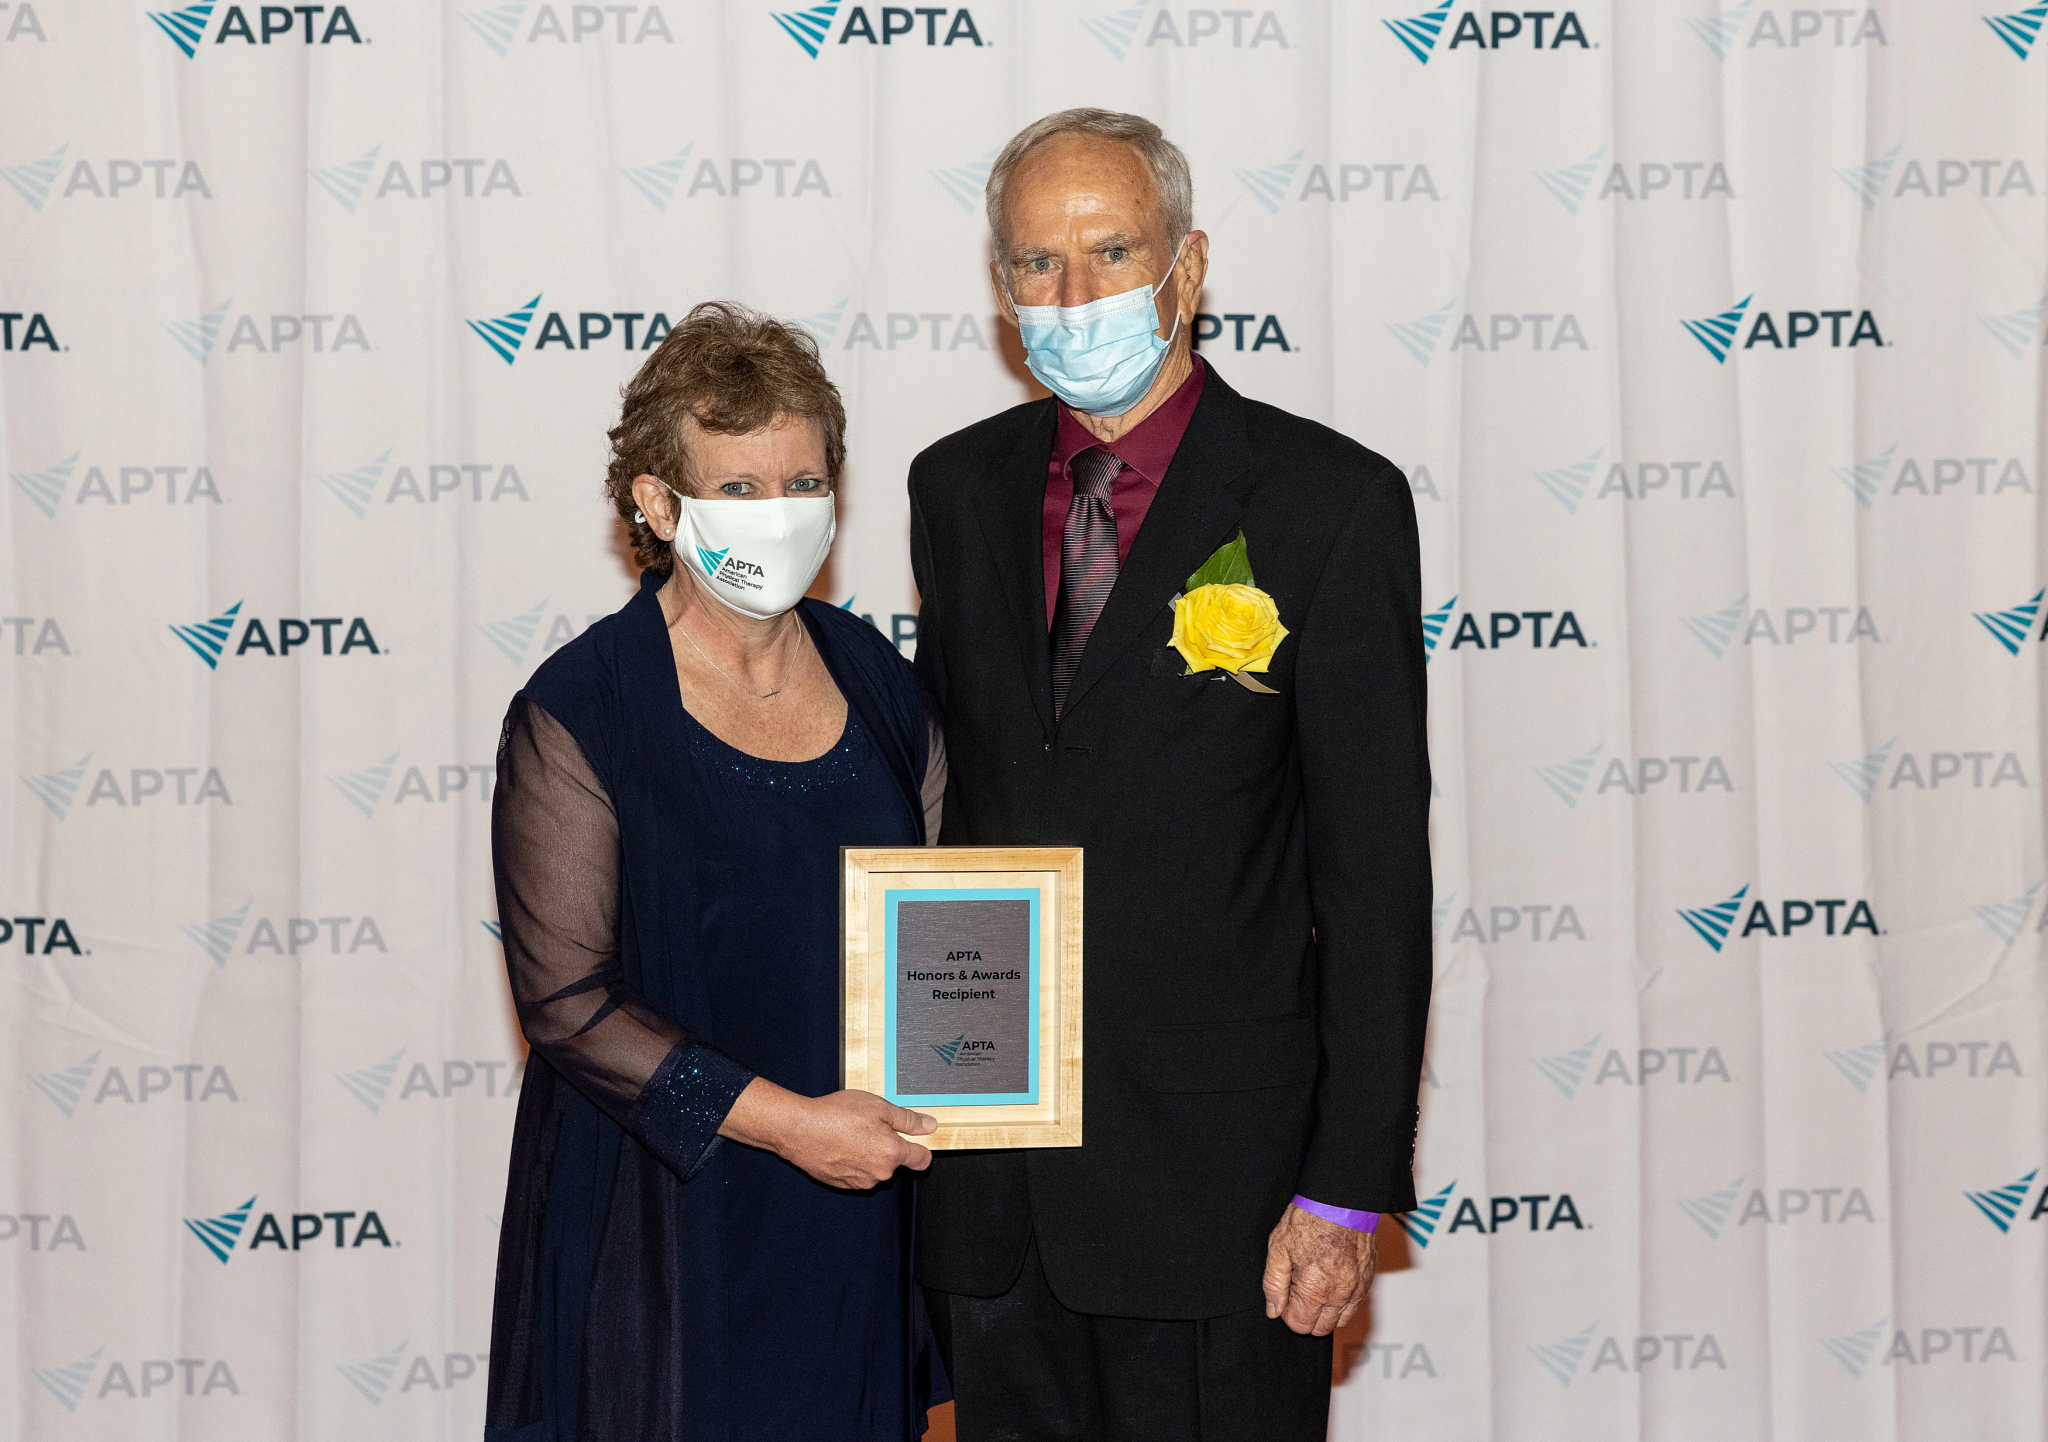 Michael with his award and the APTA president.